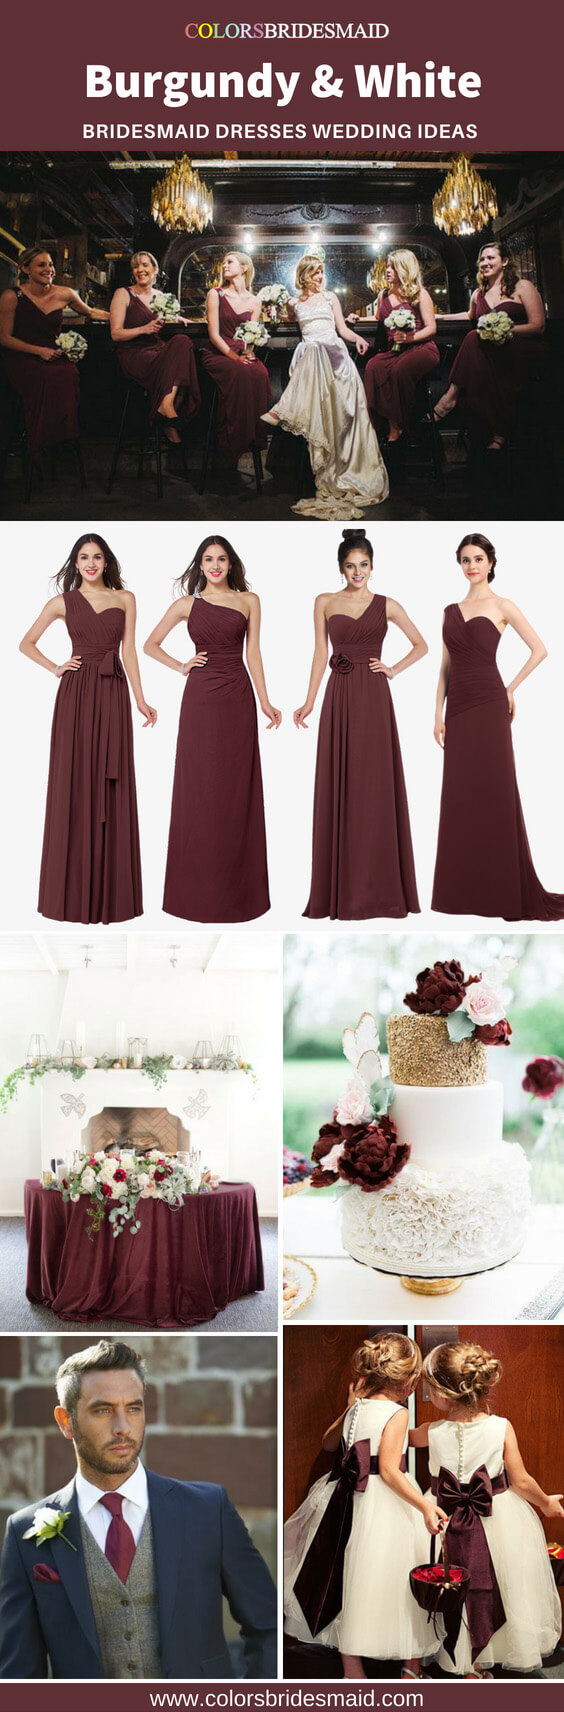 20 Best Burgundy Wedding Color Palettes In 2020 Burgundy Wedding Burgundy Wedding Colors Wedding Colors,Fall 2020 Wedding Bridesmaid Dresses 2020